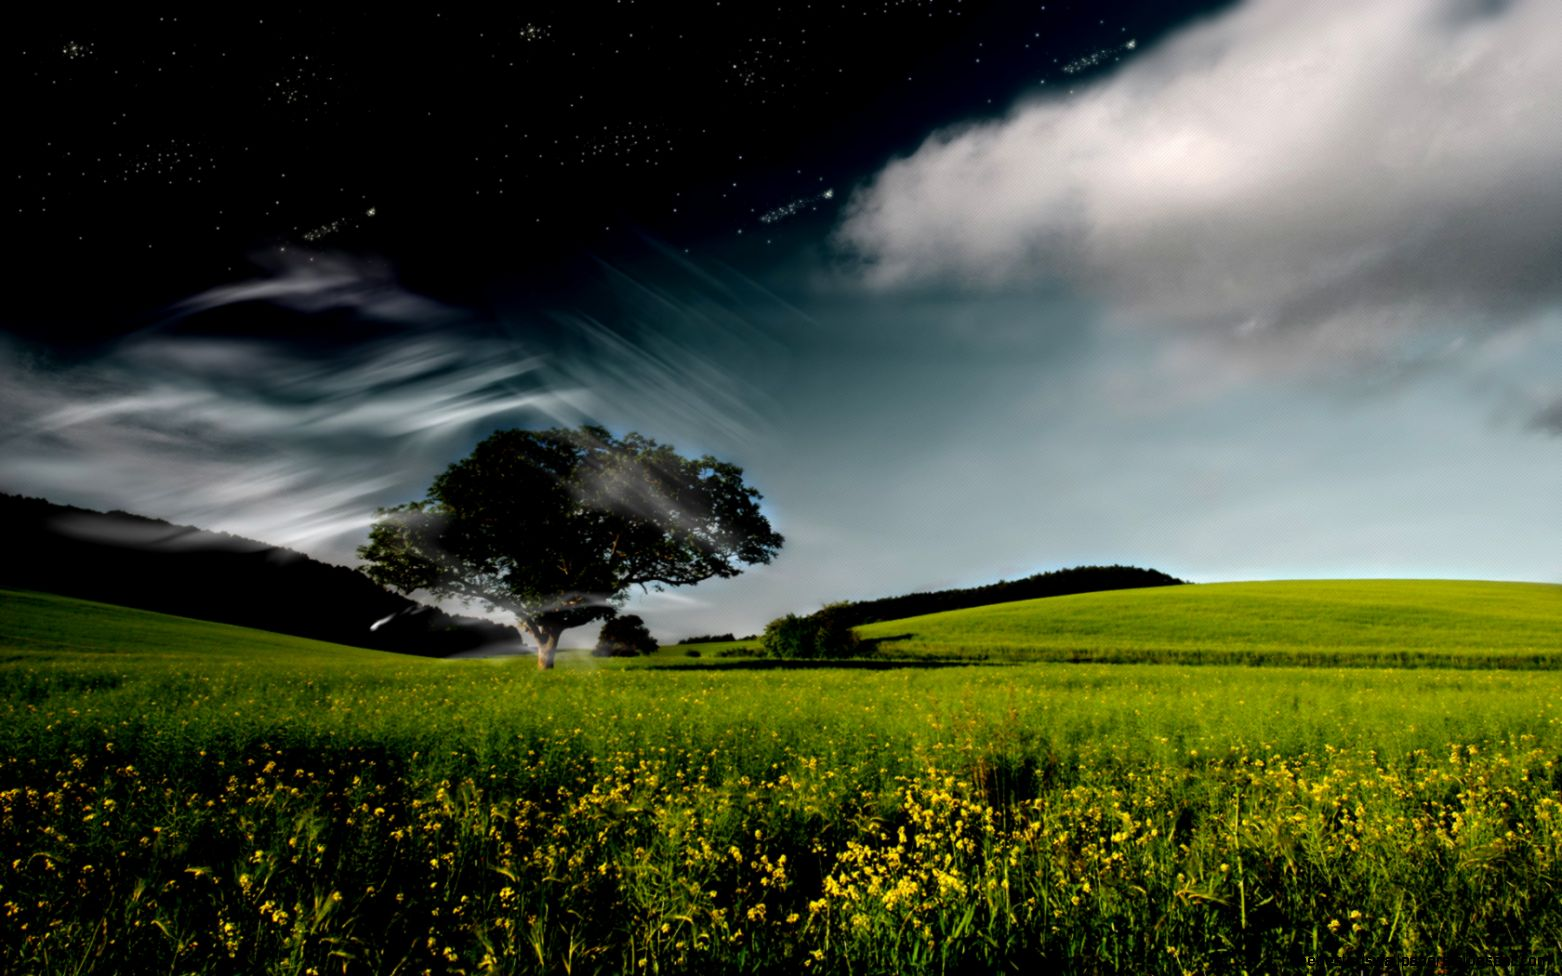 Screensavers And Backgrounds | Free Best Hd Wallpapers